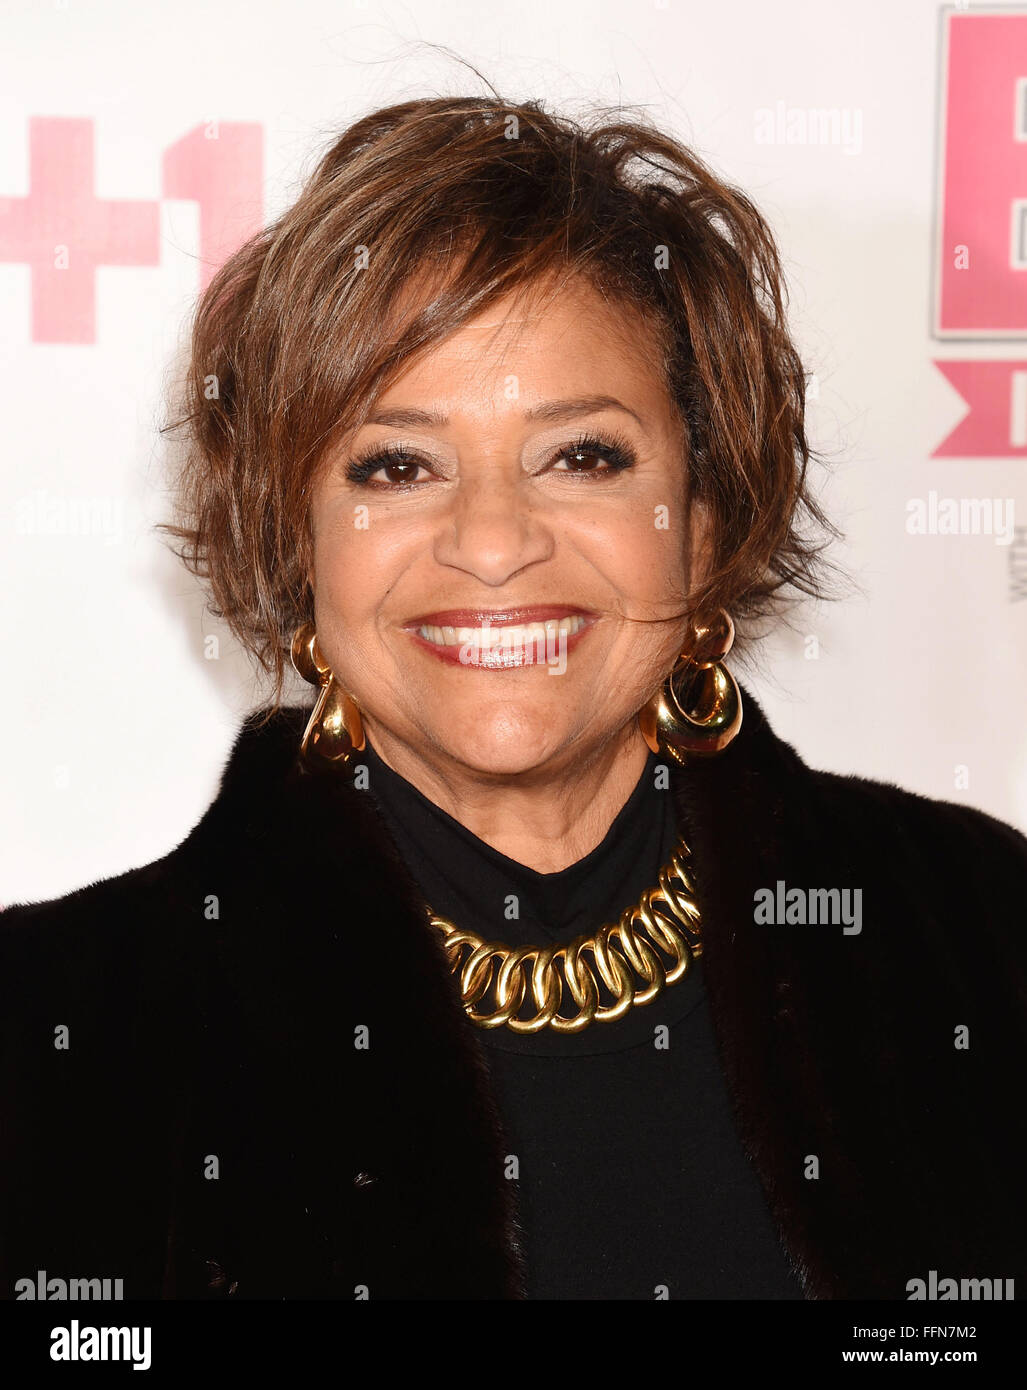 Actress/dancer/choreographer Debbie Allen attends VH1 Big In 2015 With Entertainment Weekly Awards at Pacific Design - Stock Image